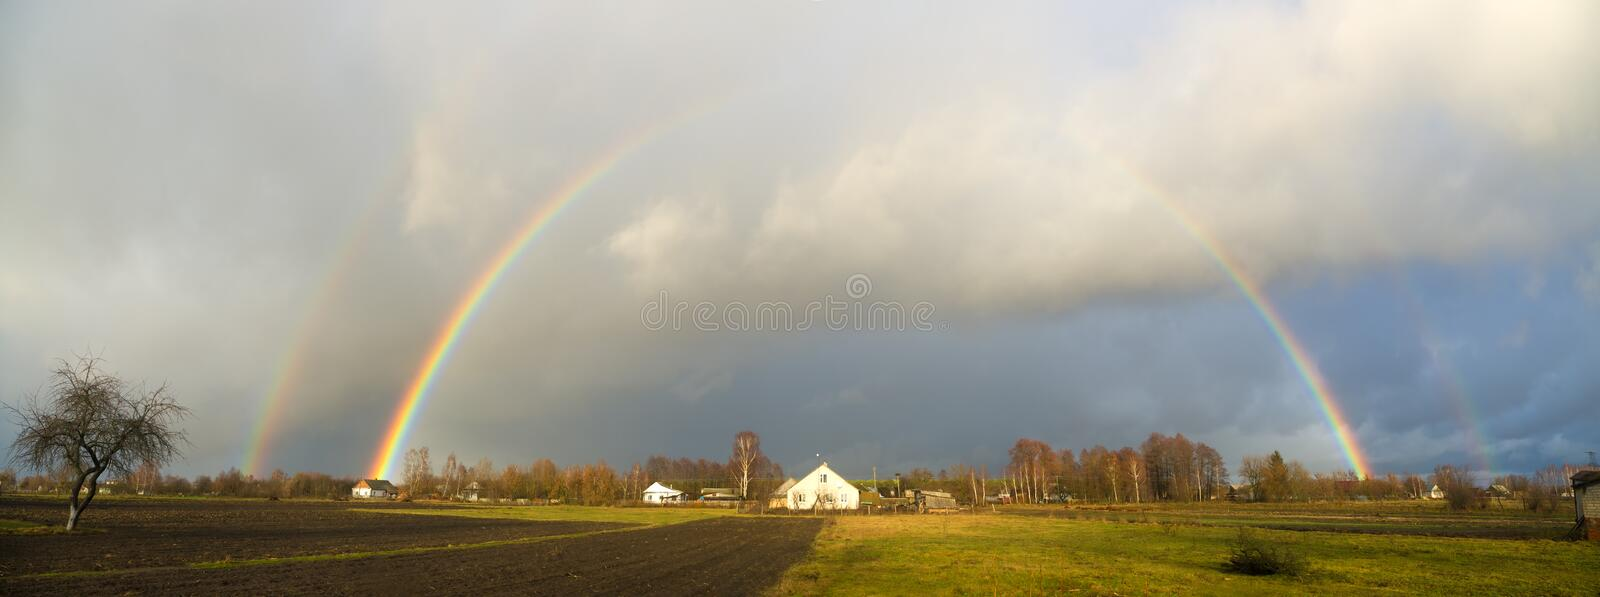 Rainbow over the village royalty free stock photo